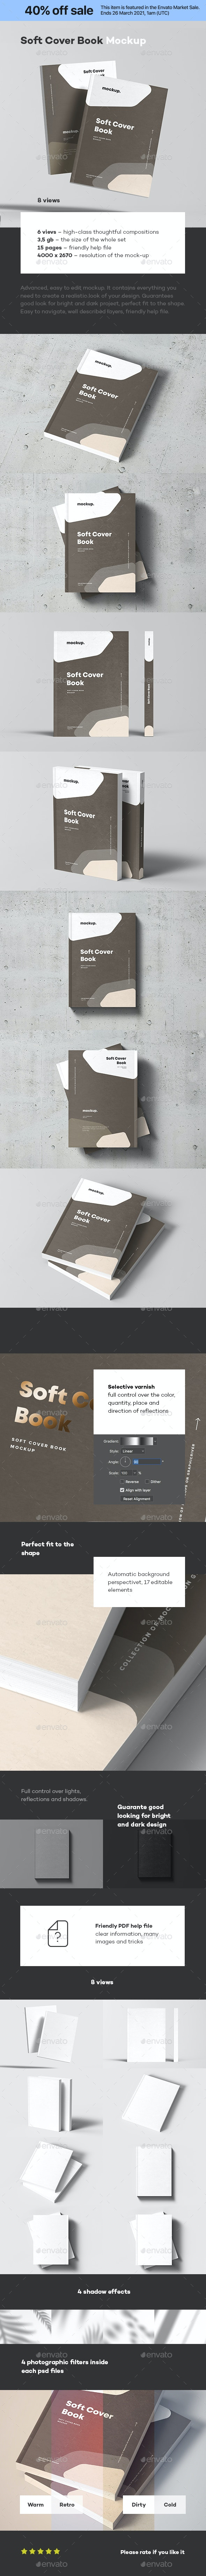 Soft Cover Book Mock-up - Books Print